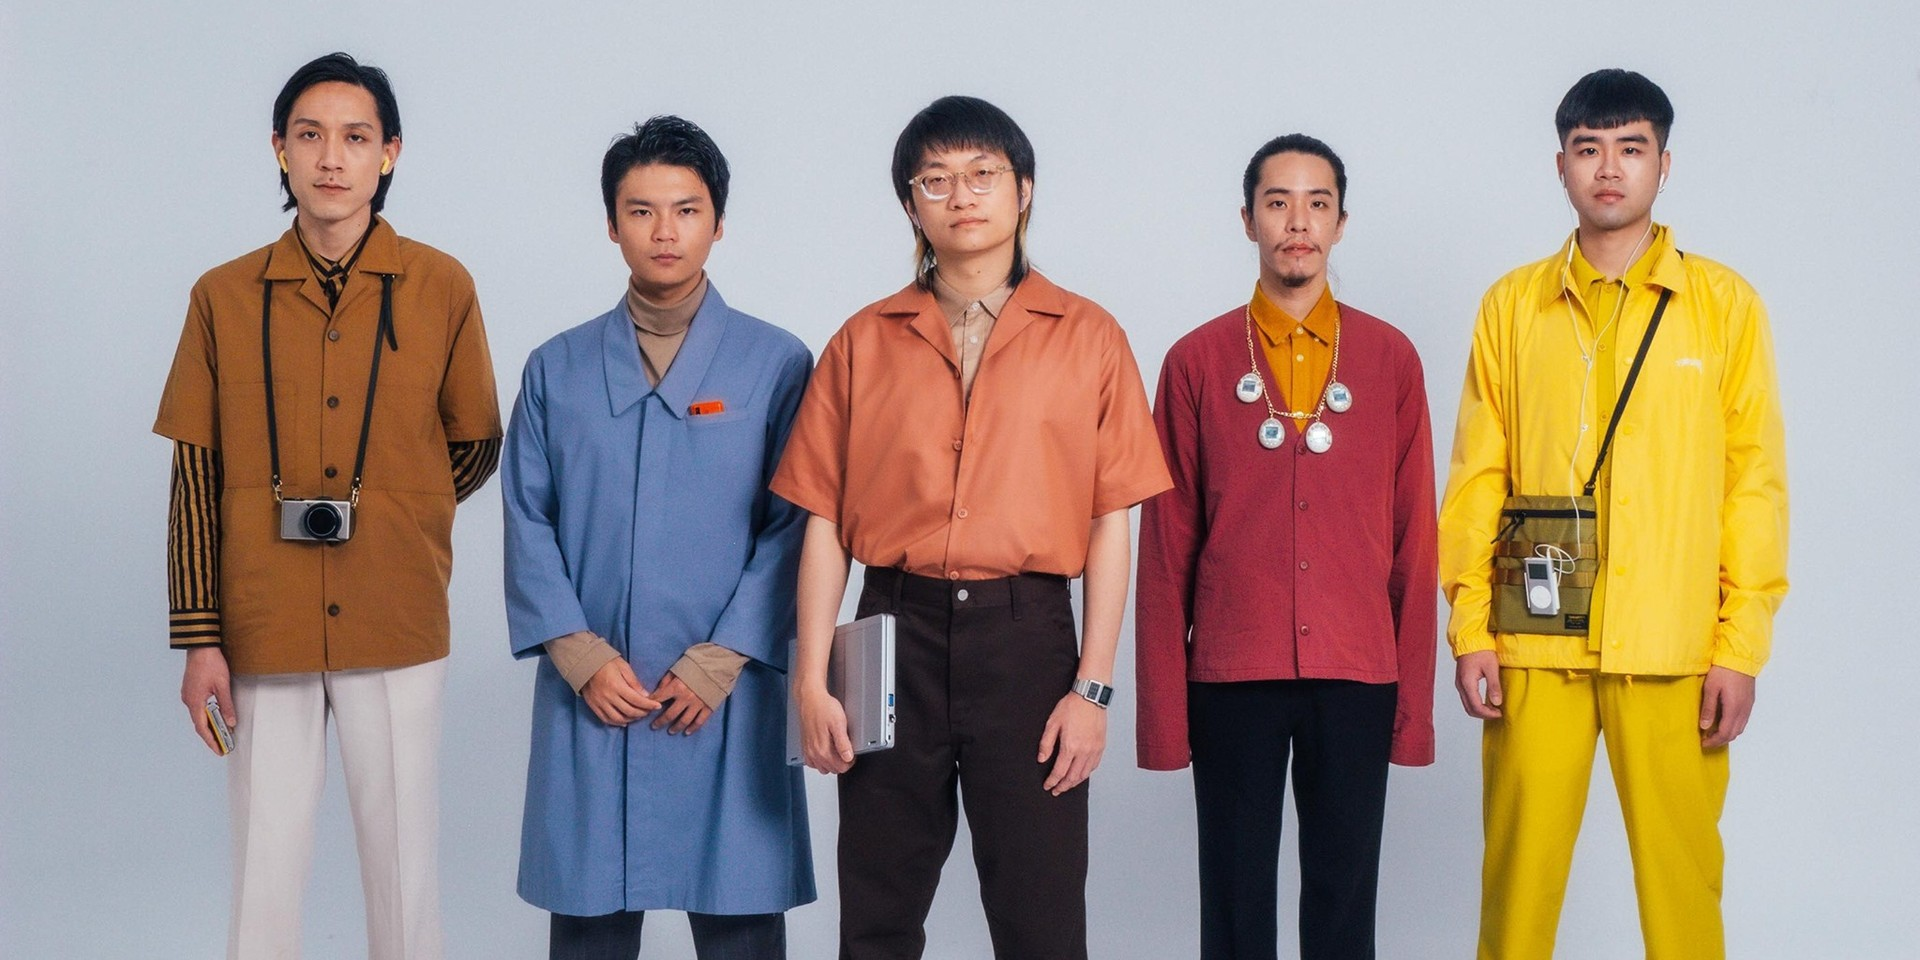 Sunset Rollercoaster release new album SOFT STORM, featuring HYUKOH's Oh Hyuk and Michael Seyer – listen